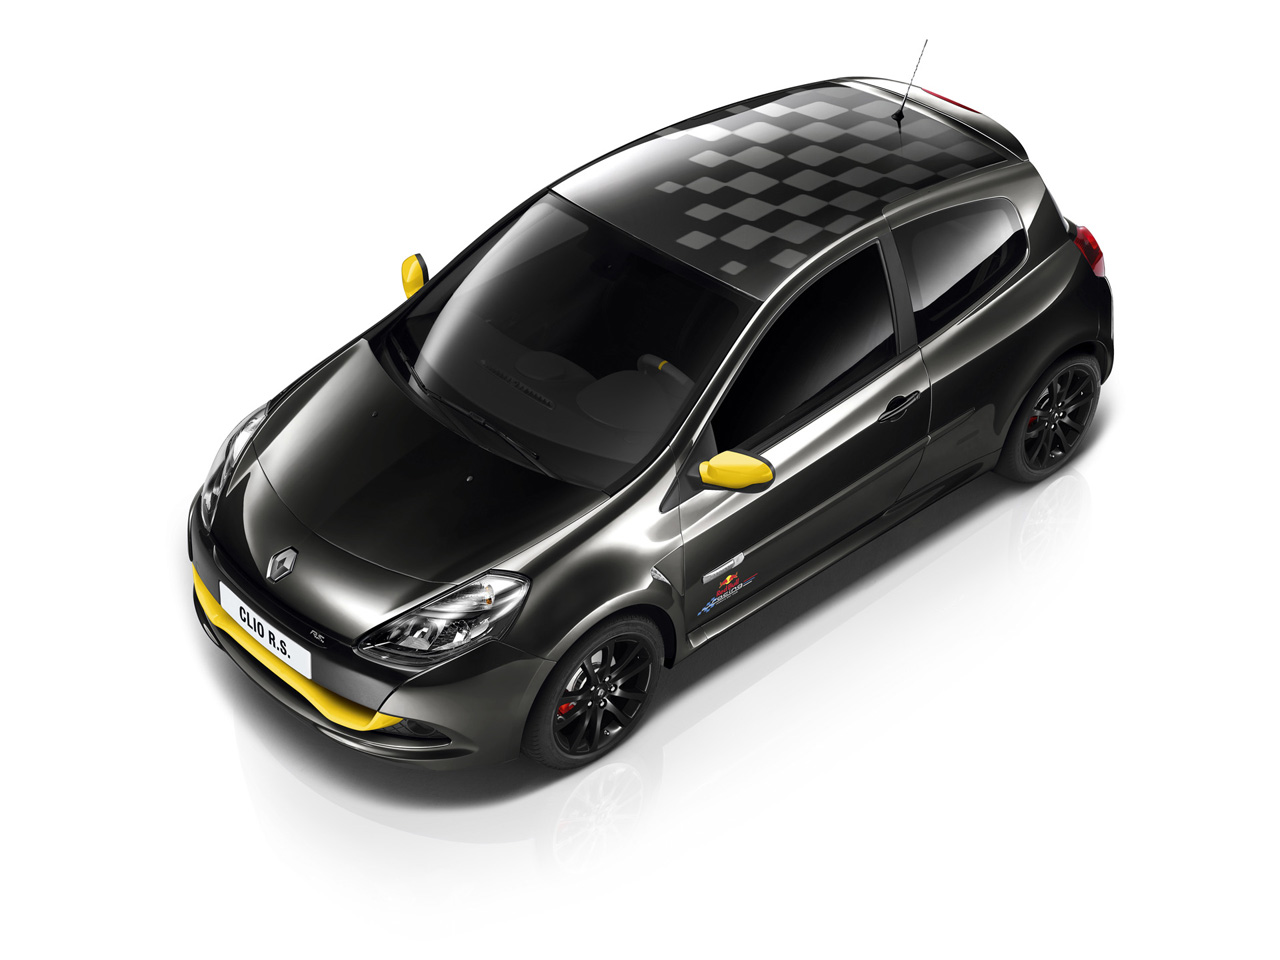 macchina renault clio rs red bull racing rb7 garagem do rovida. Black Bedroom Furniture Sets. Home Design Ideas